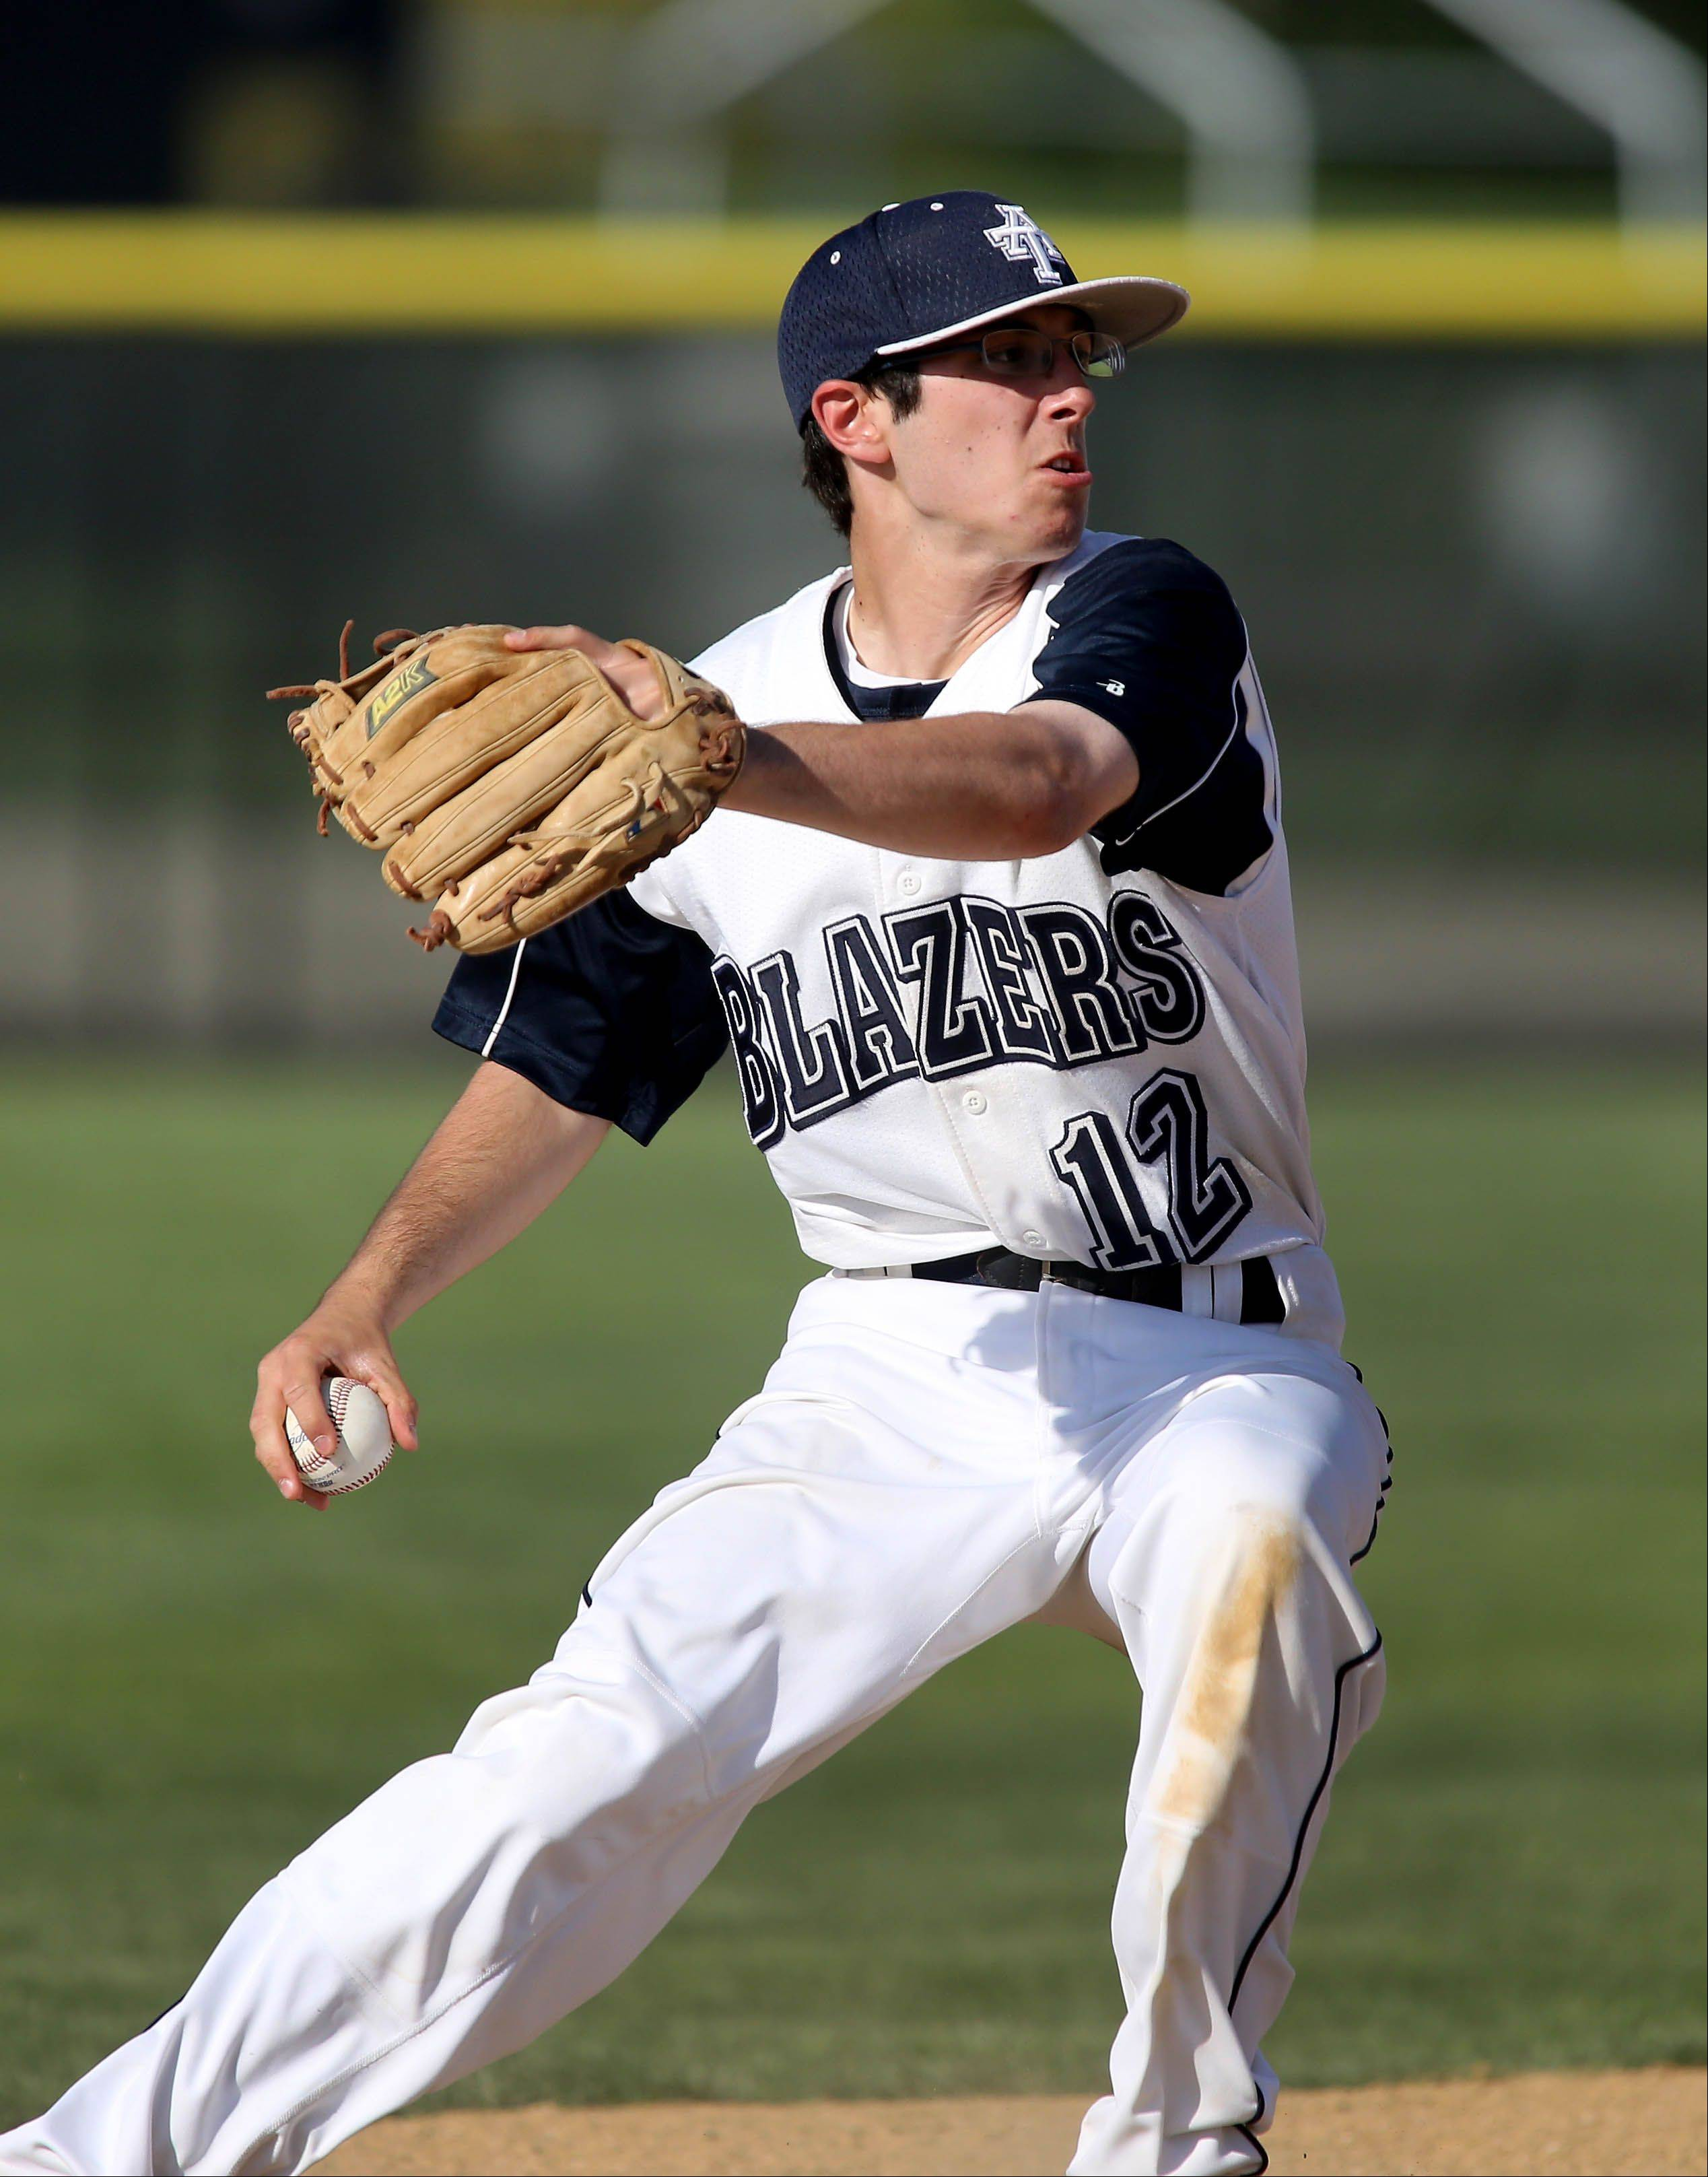 Joe Amato of Addison Trail throws to first in against Streamwood in baseball action on Monday in Addison.